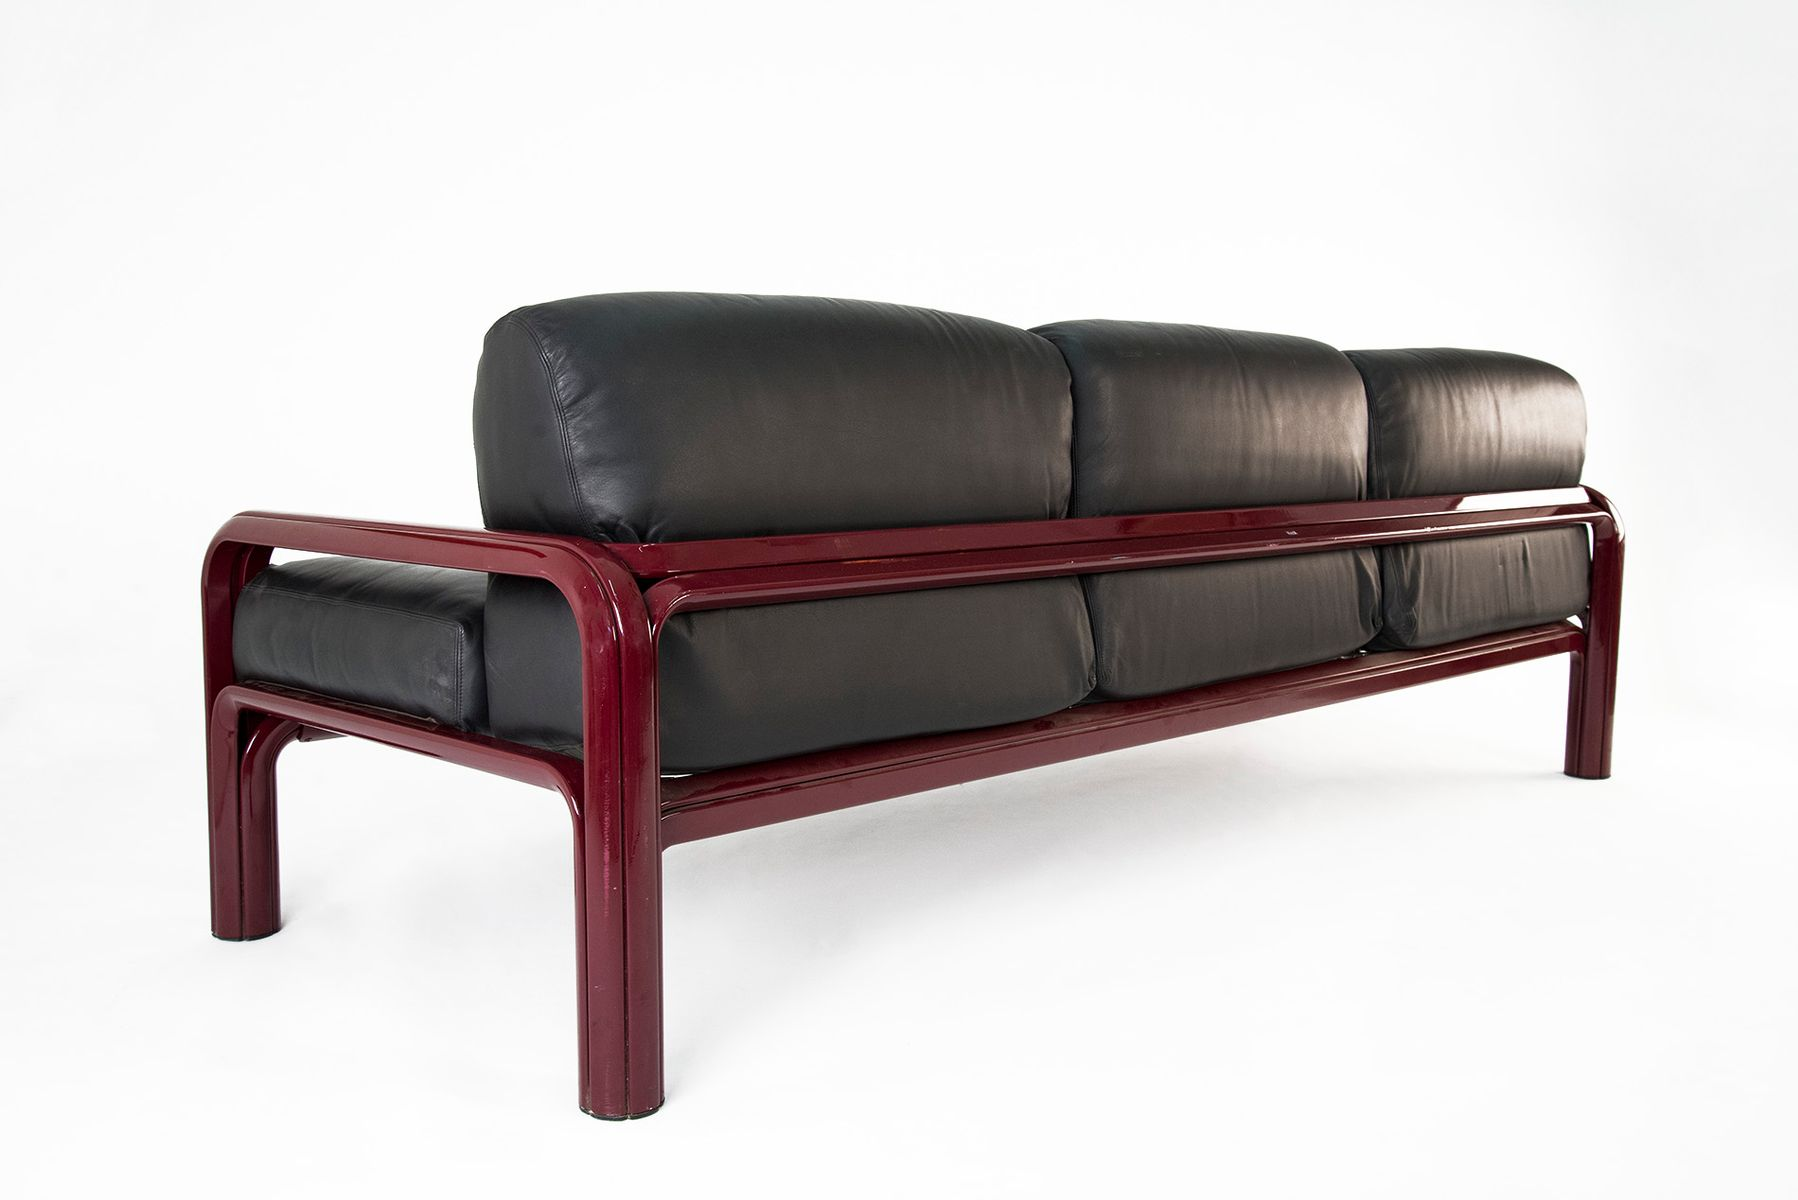 Leather Sofa by Gae Aulenti for Knoll 1976 for sale at Pamono